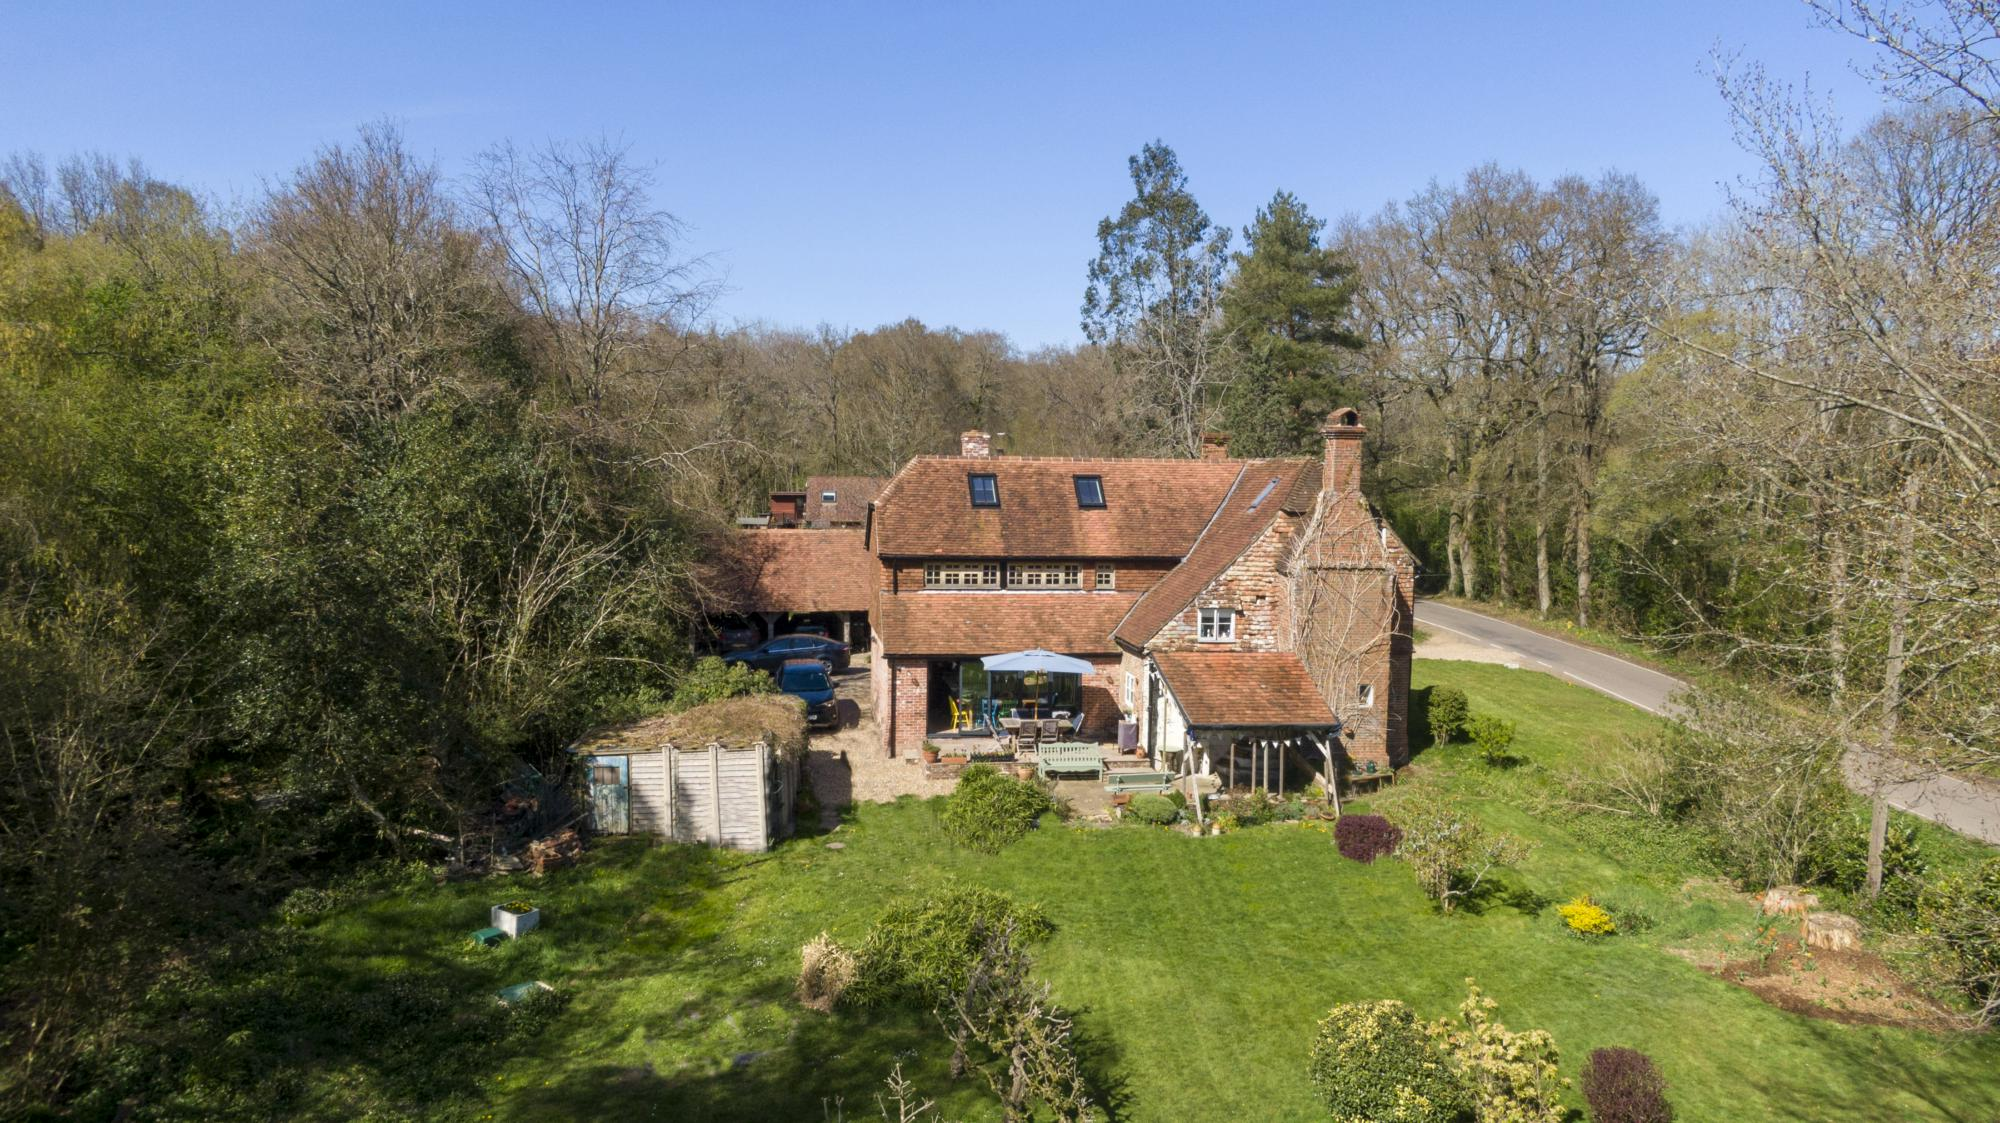 B&Bs in South East England holidays at Cool Places